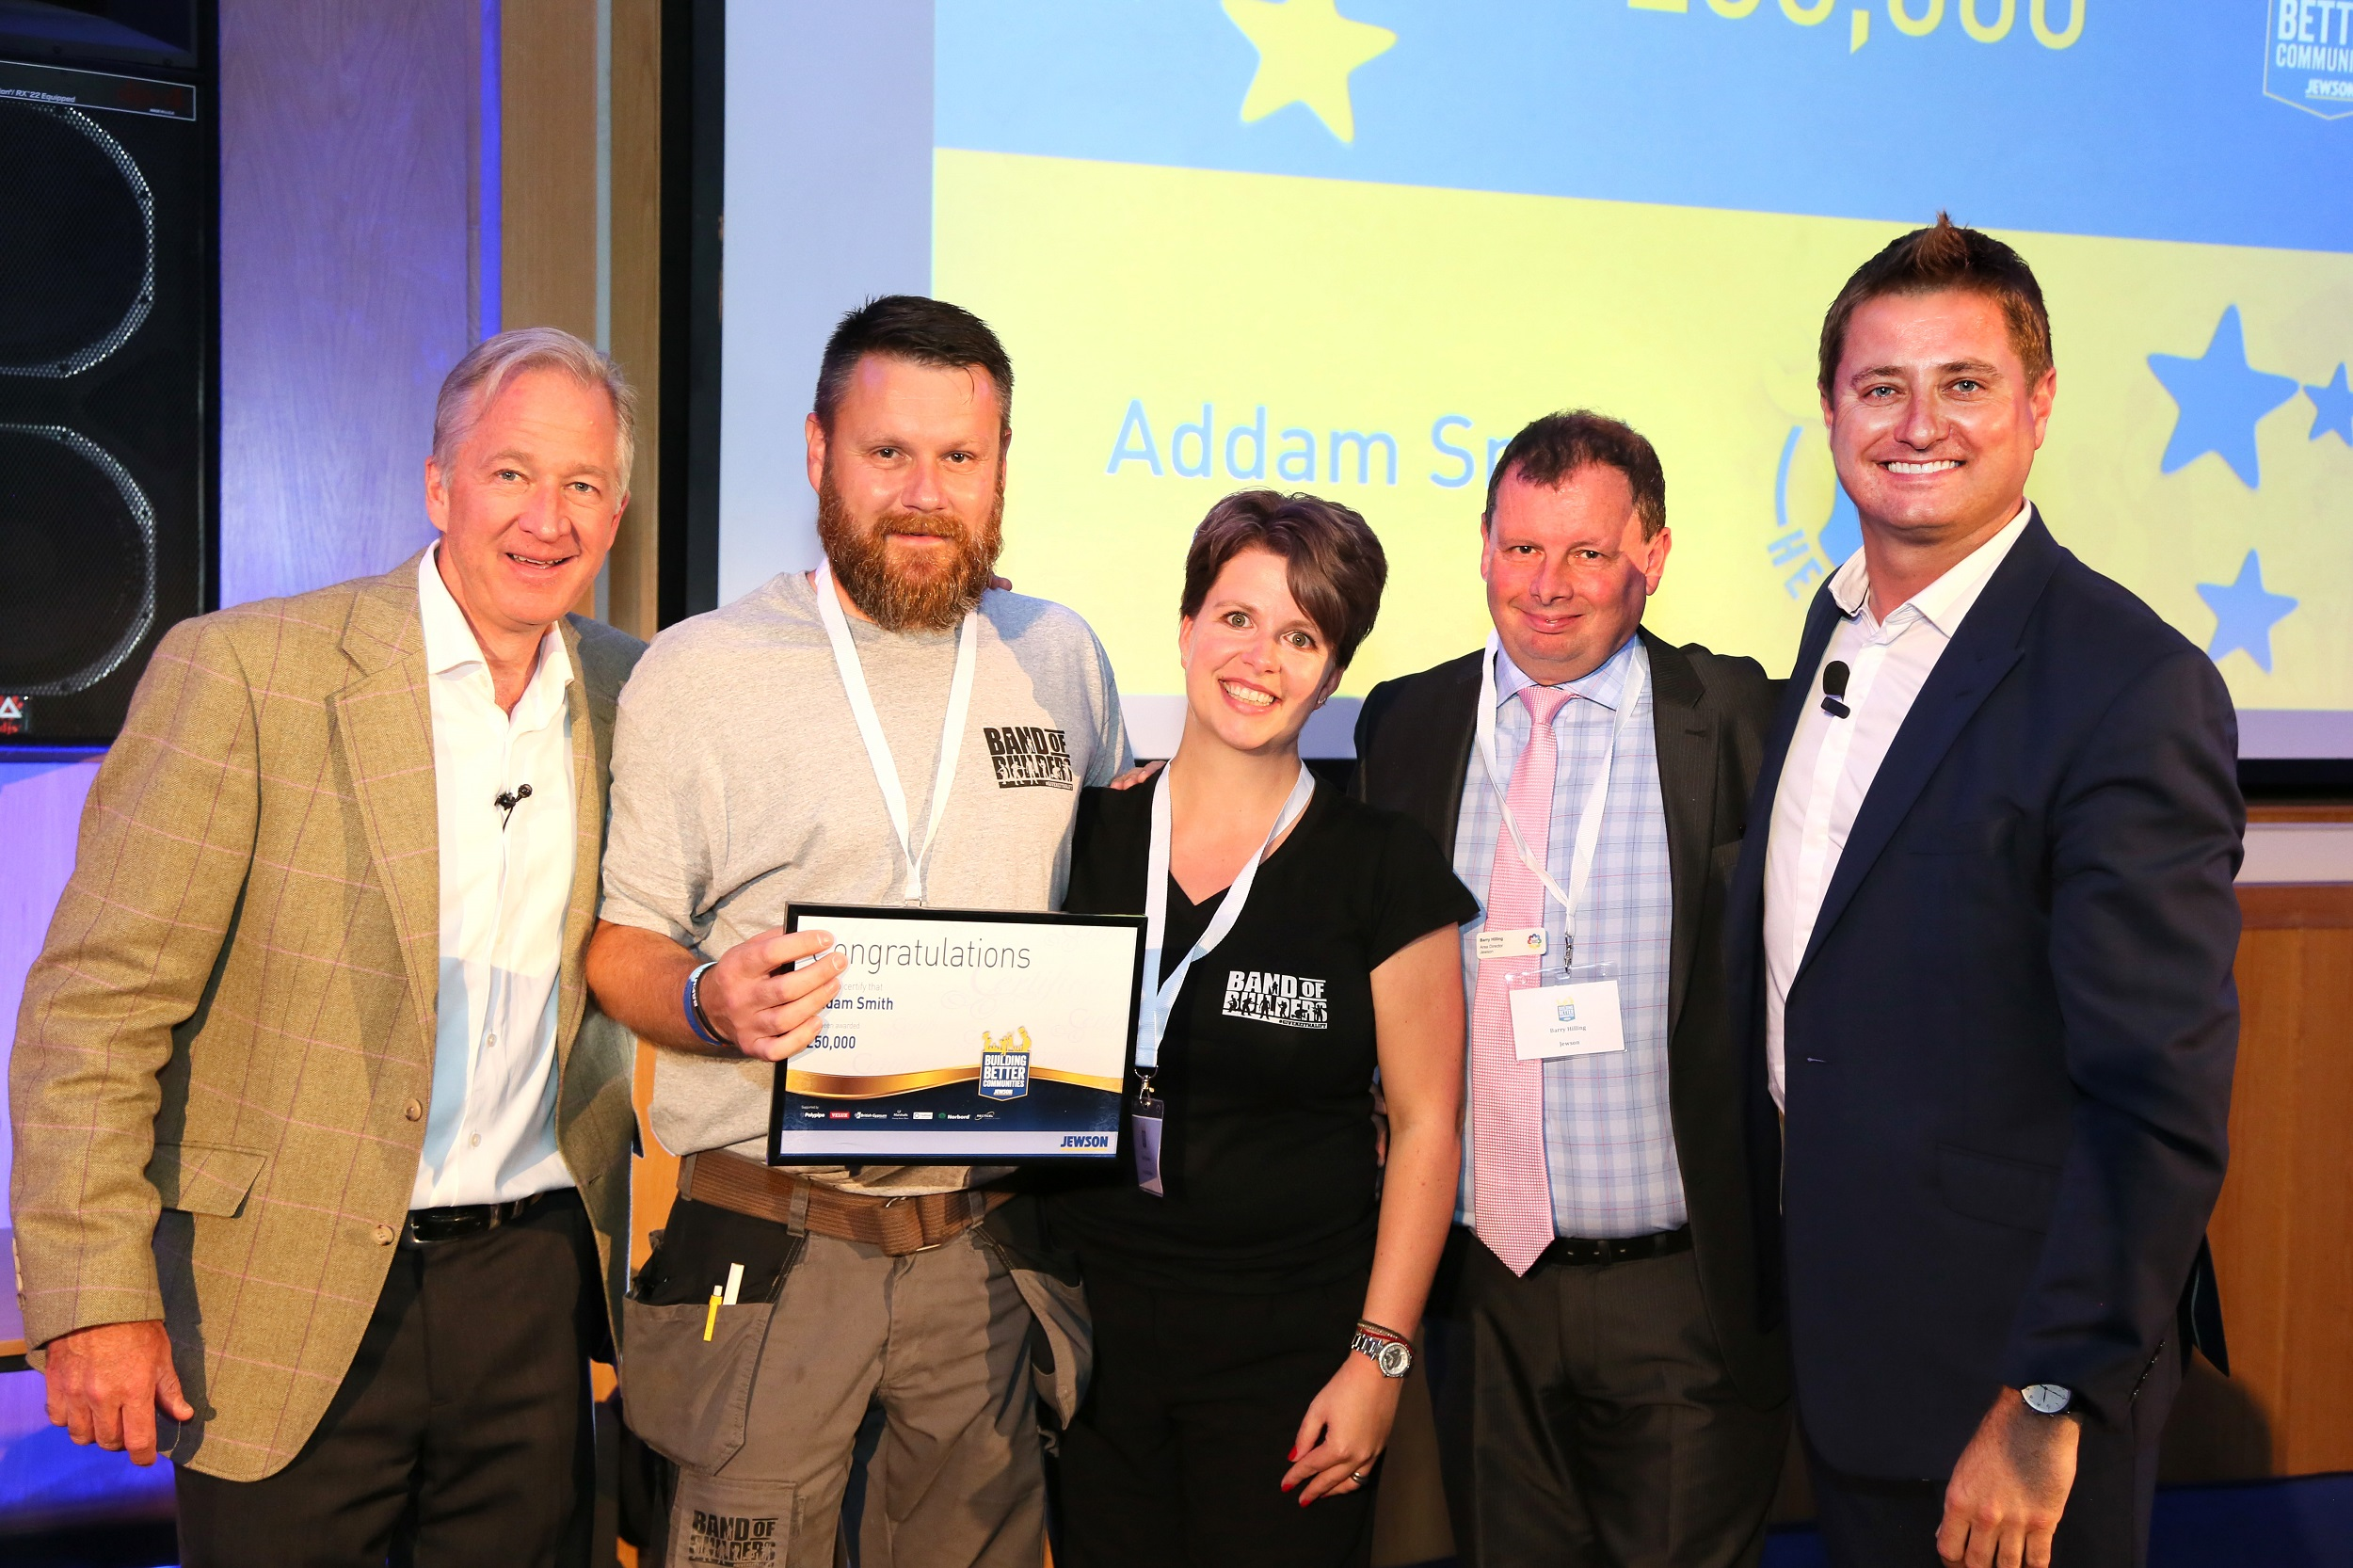 Jewson launches fund to support housebuilders and projects in need